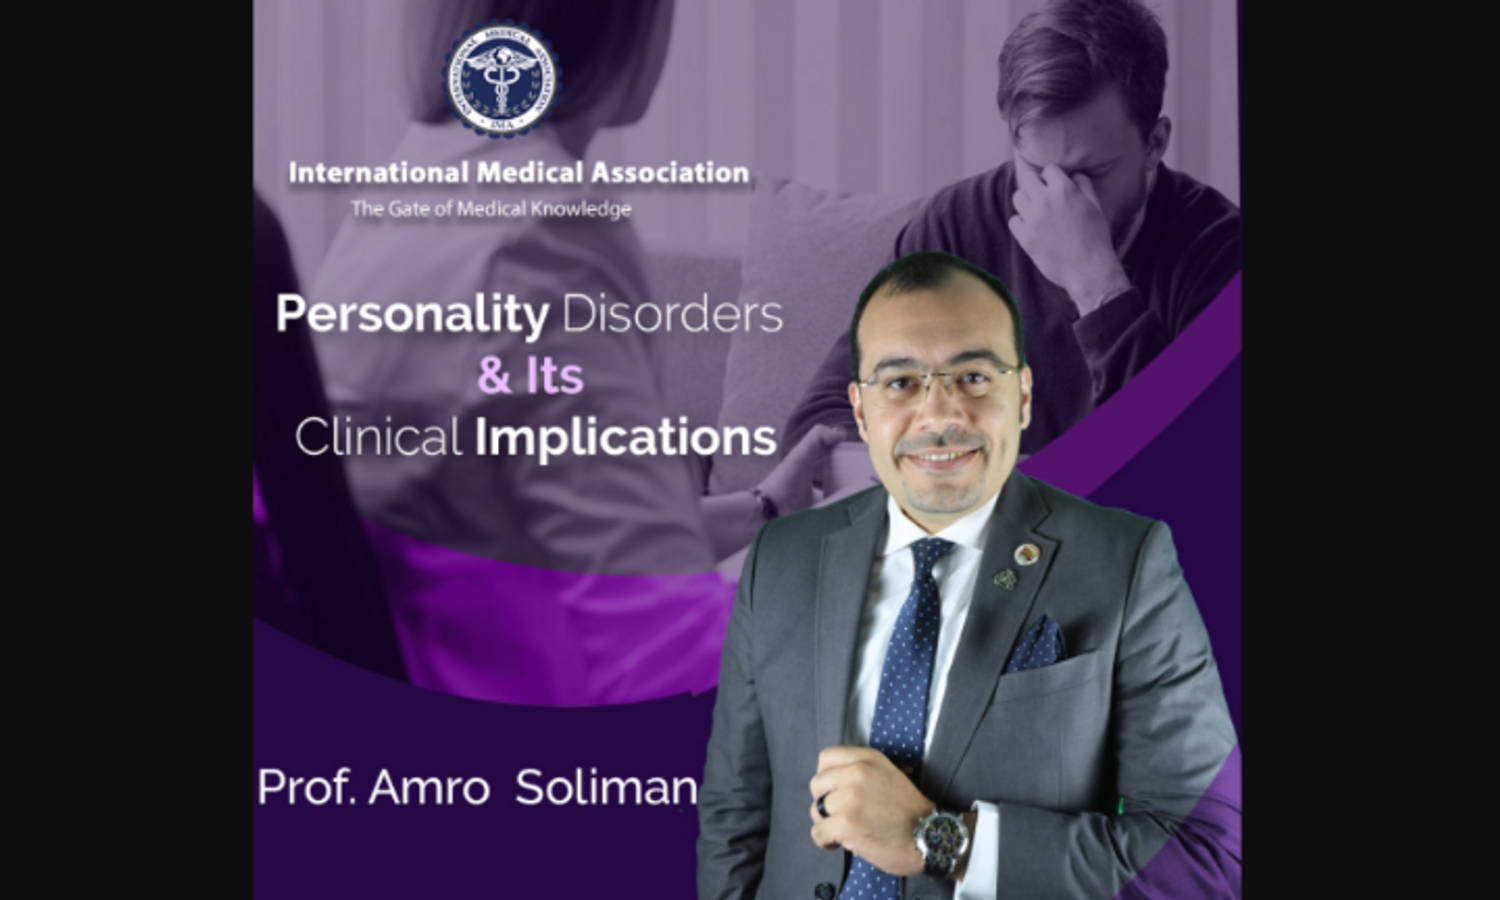 Personality Disorders & Its Clinical Implications